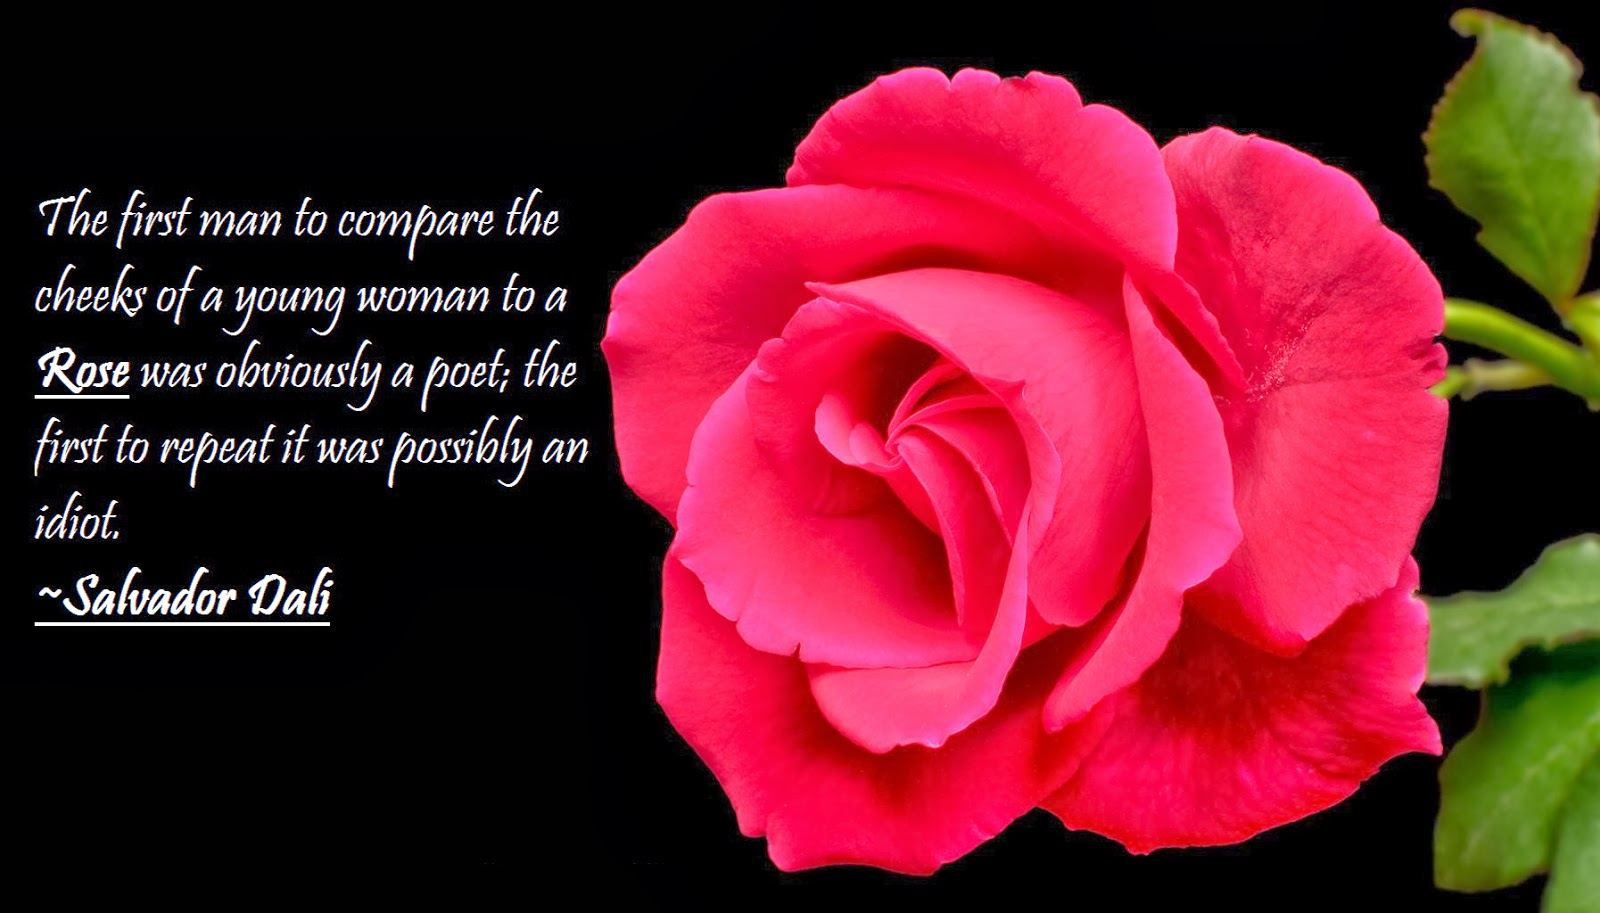 Quotes Related To Rose , HD Wallpaper & Backgrounds